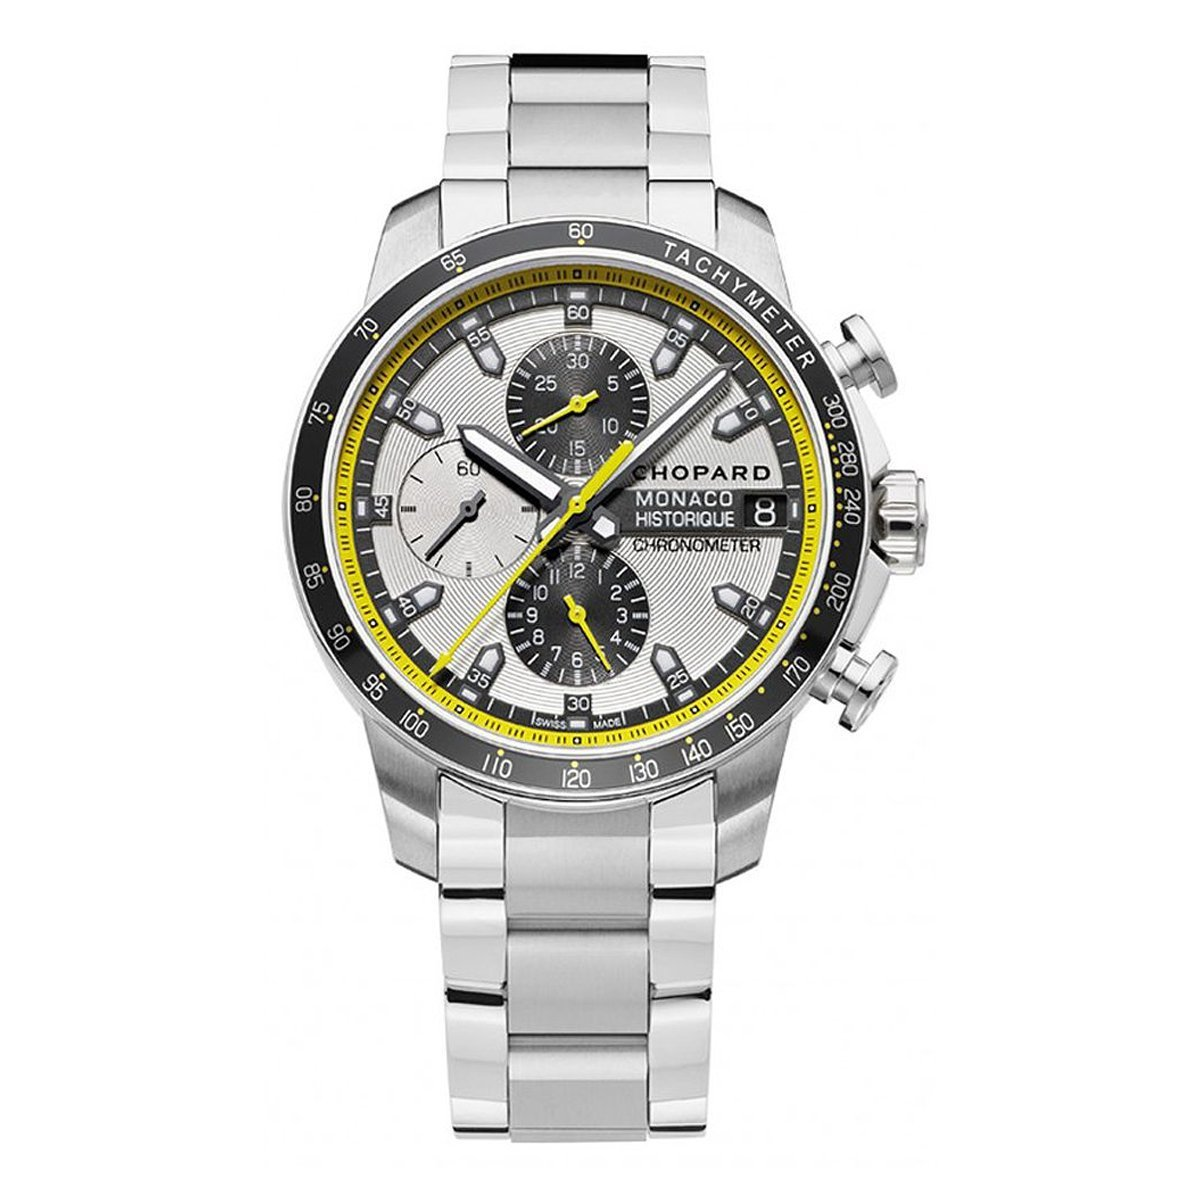 Chopard Grand Prix Monaco Historique Chronograph Men's Watch - Watches & Crystals